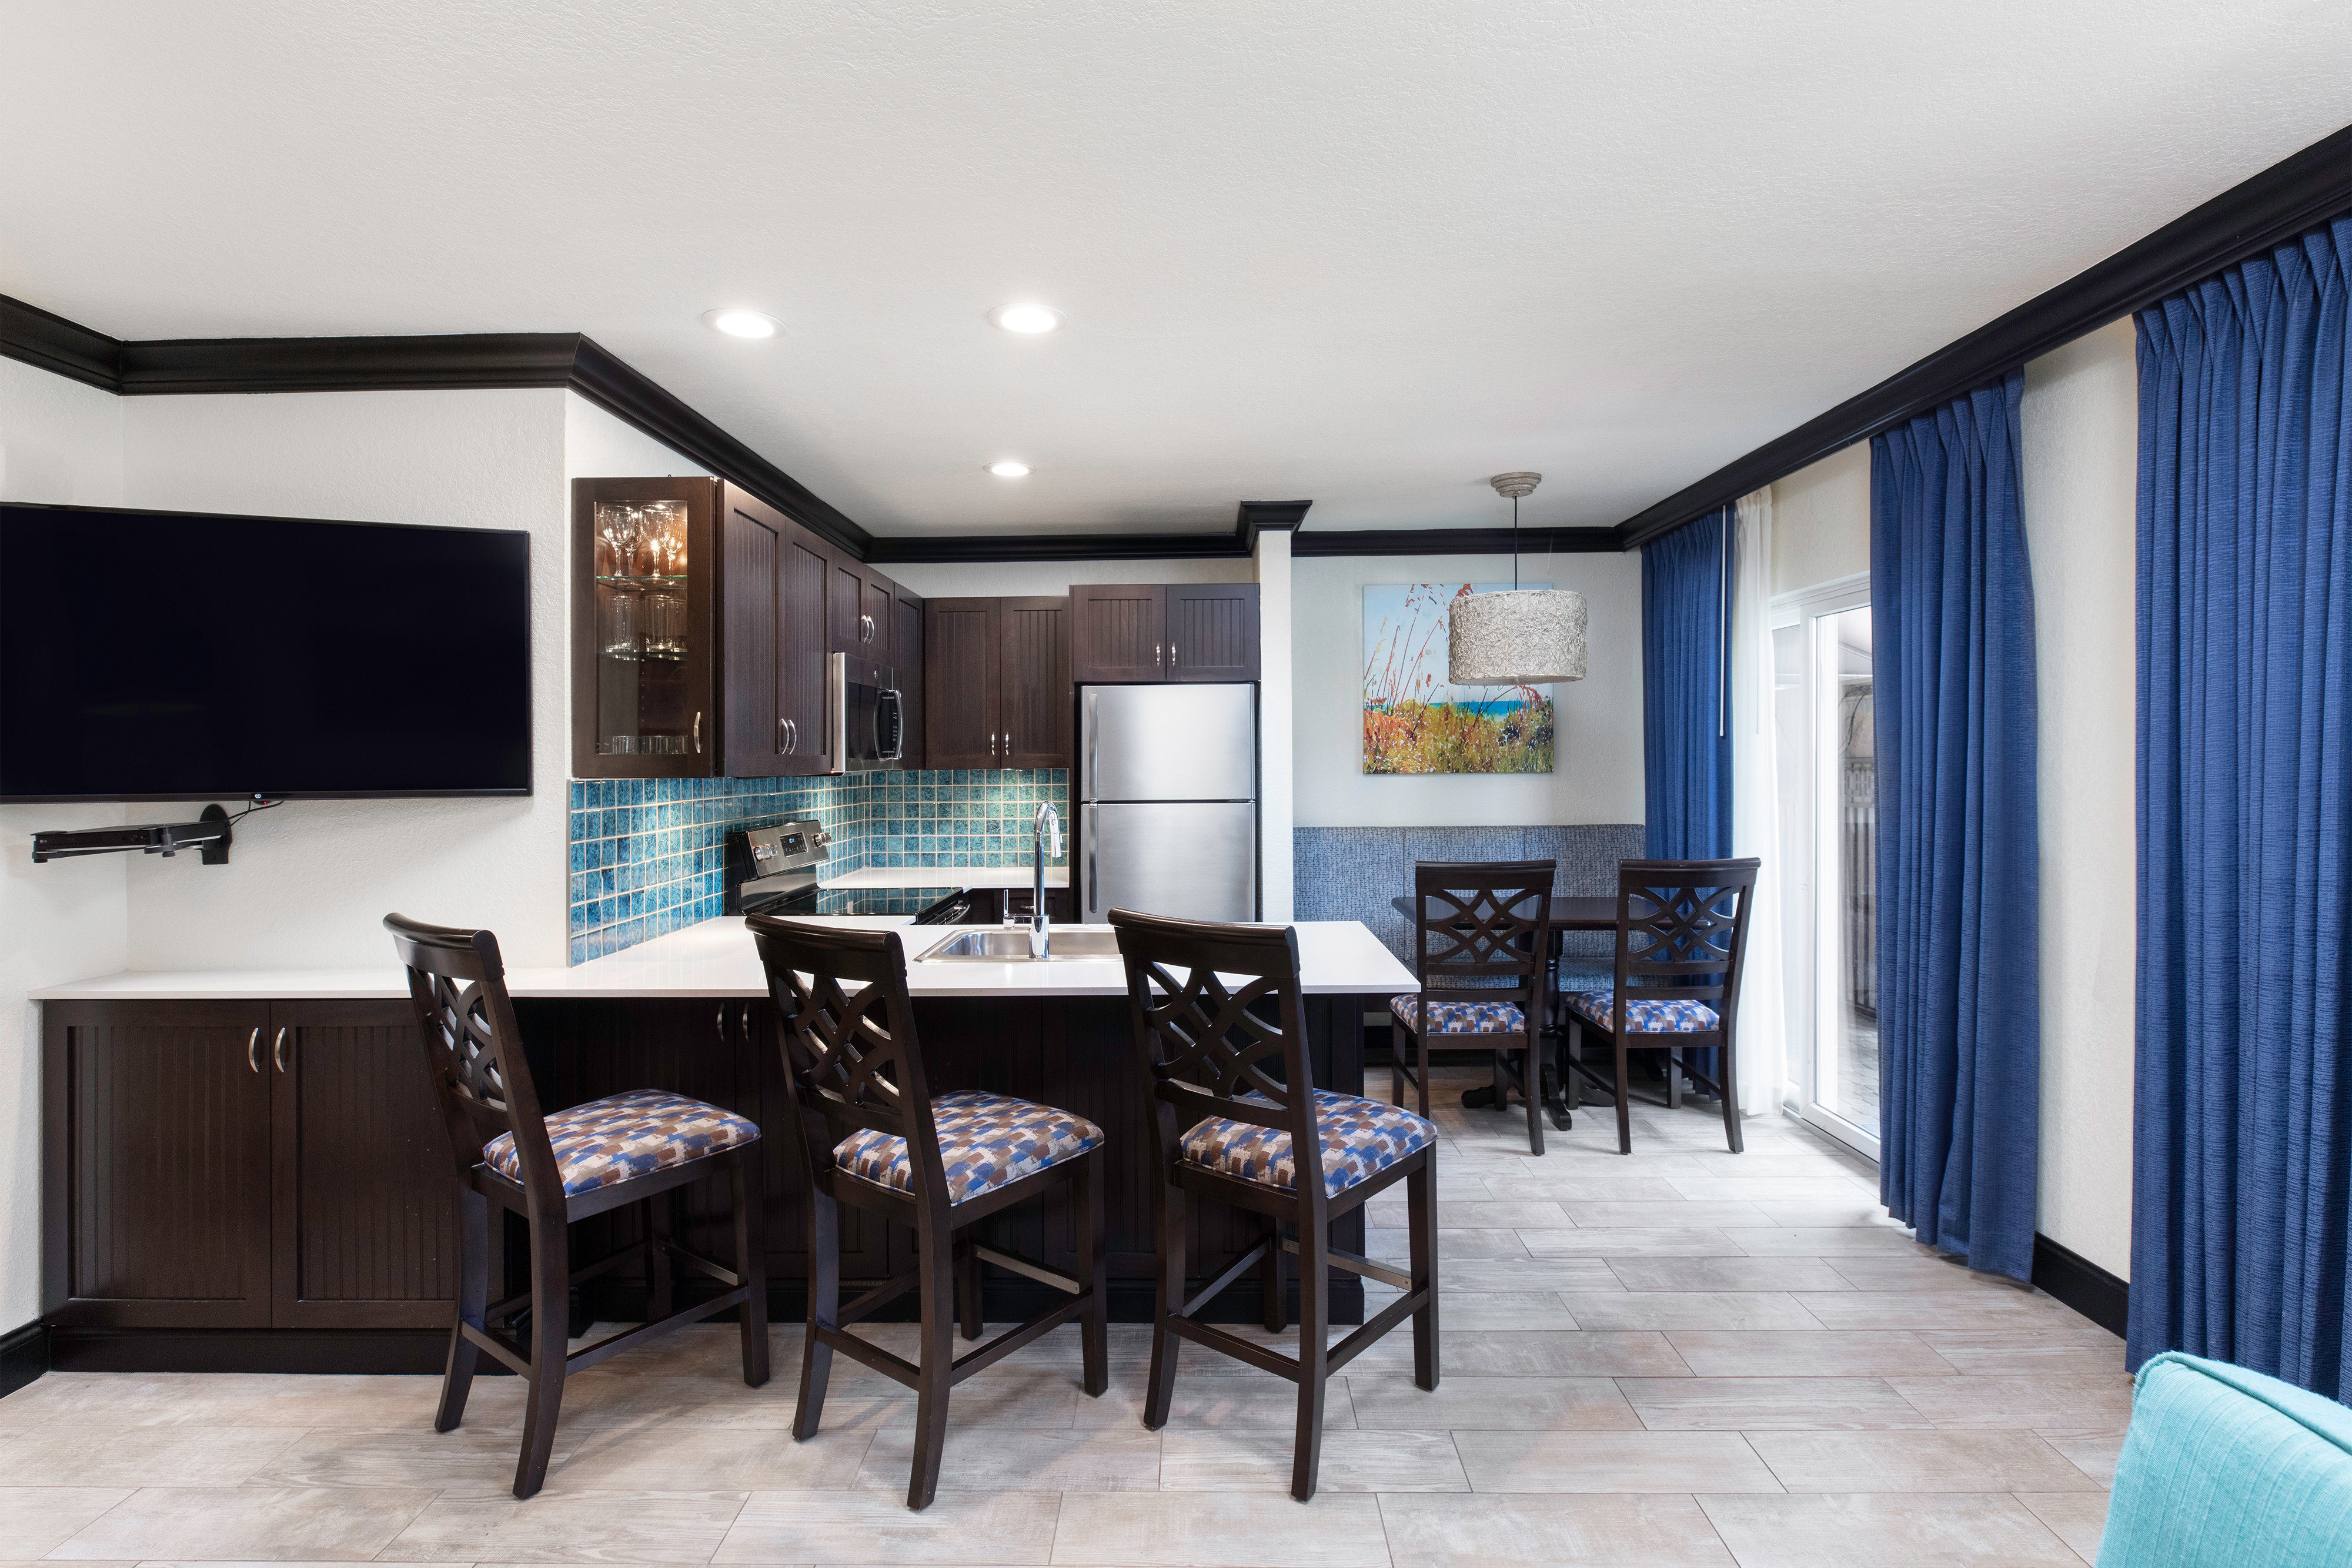 Kitchen And Dining Area In Suite